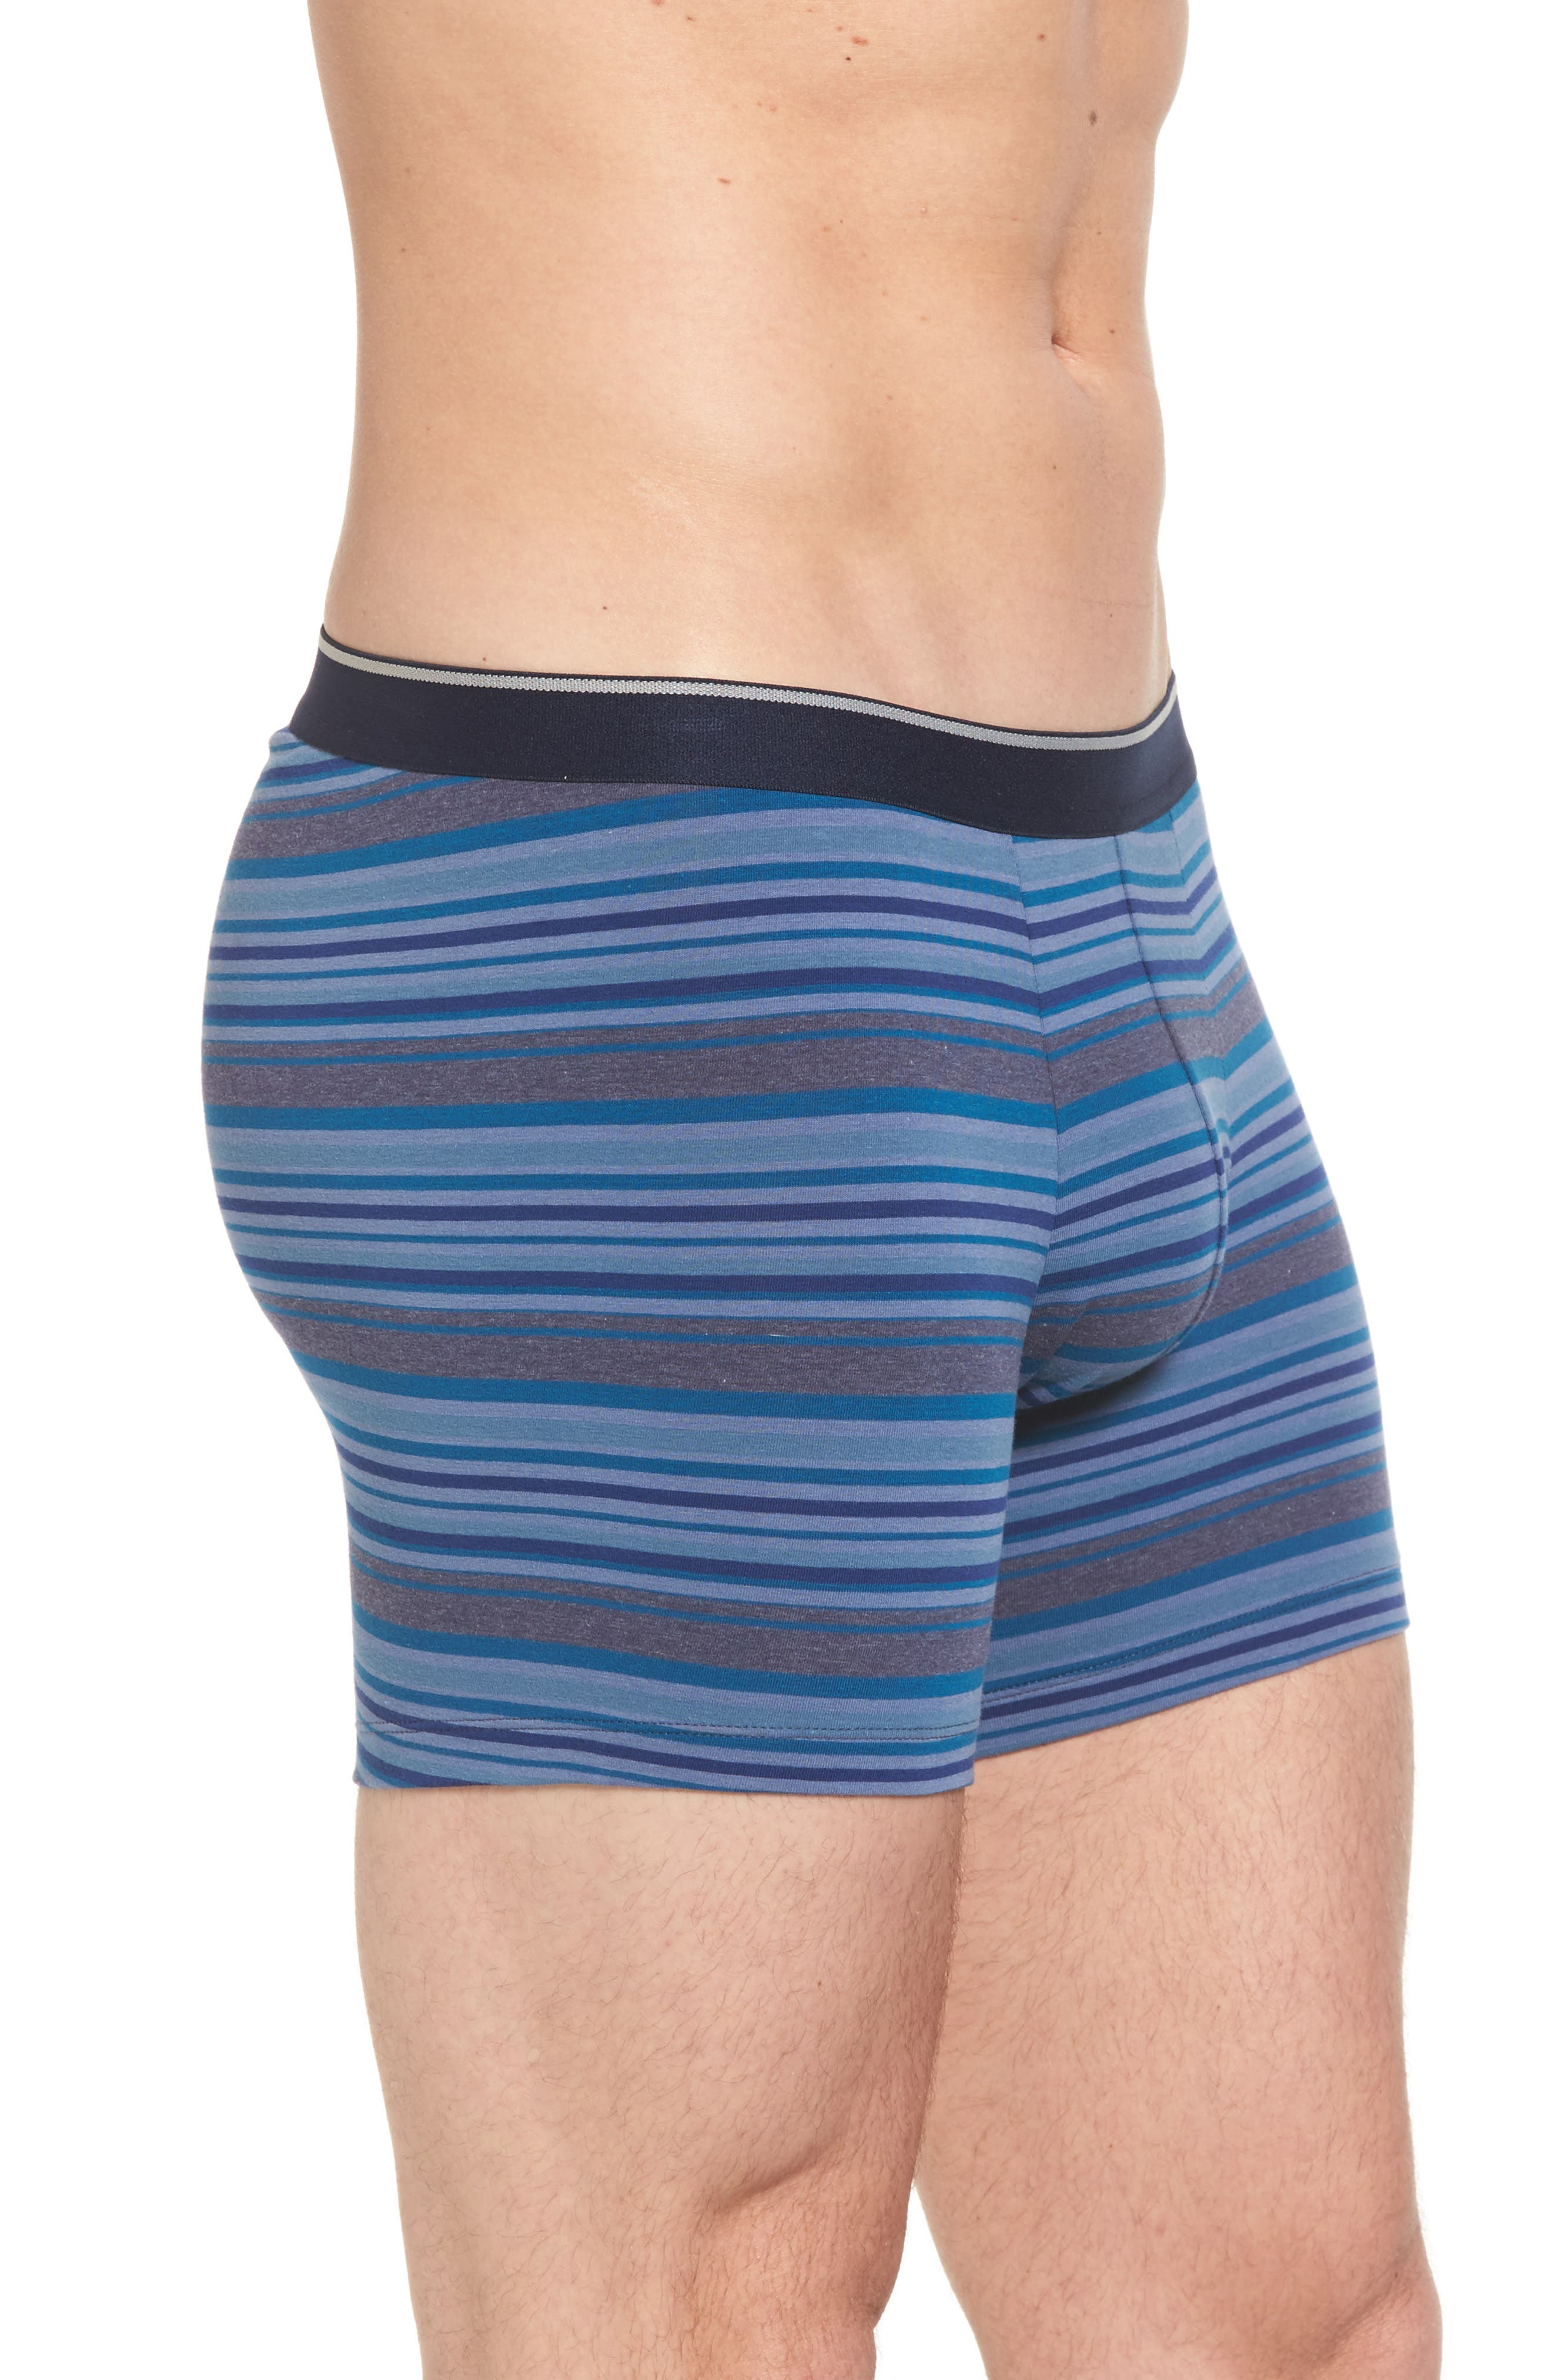 Pouch Briefs,                             Alternate thumbnail 3, color,                             Blue Tonal Multi Stripe